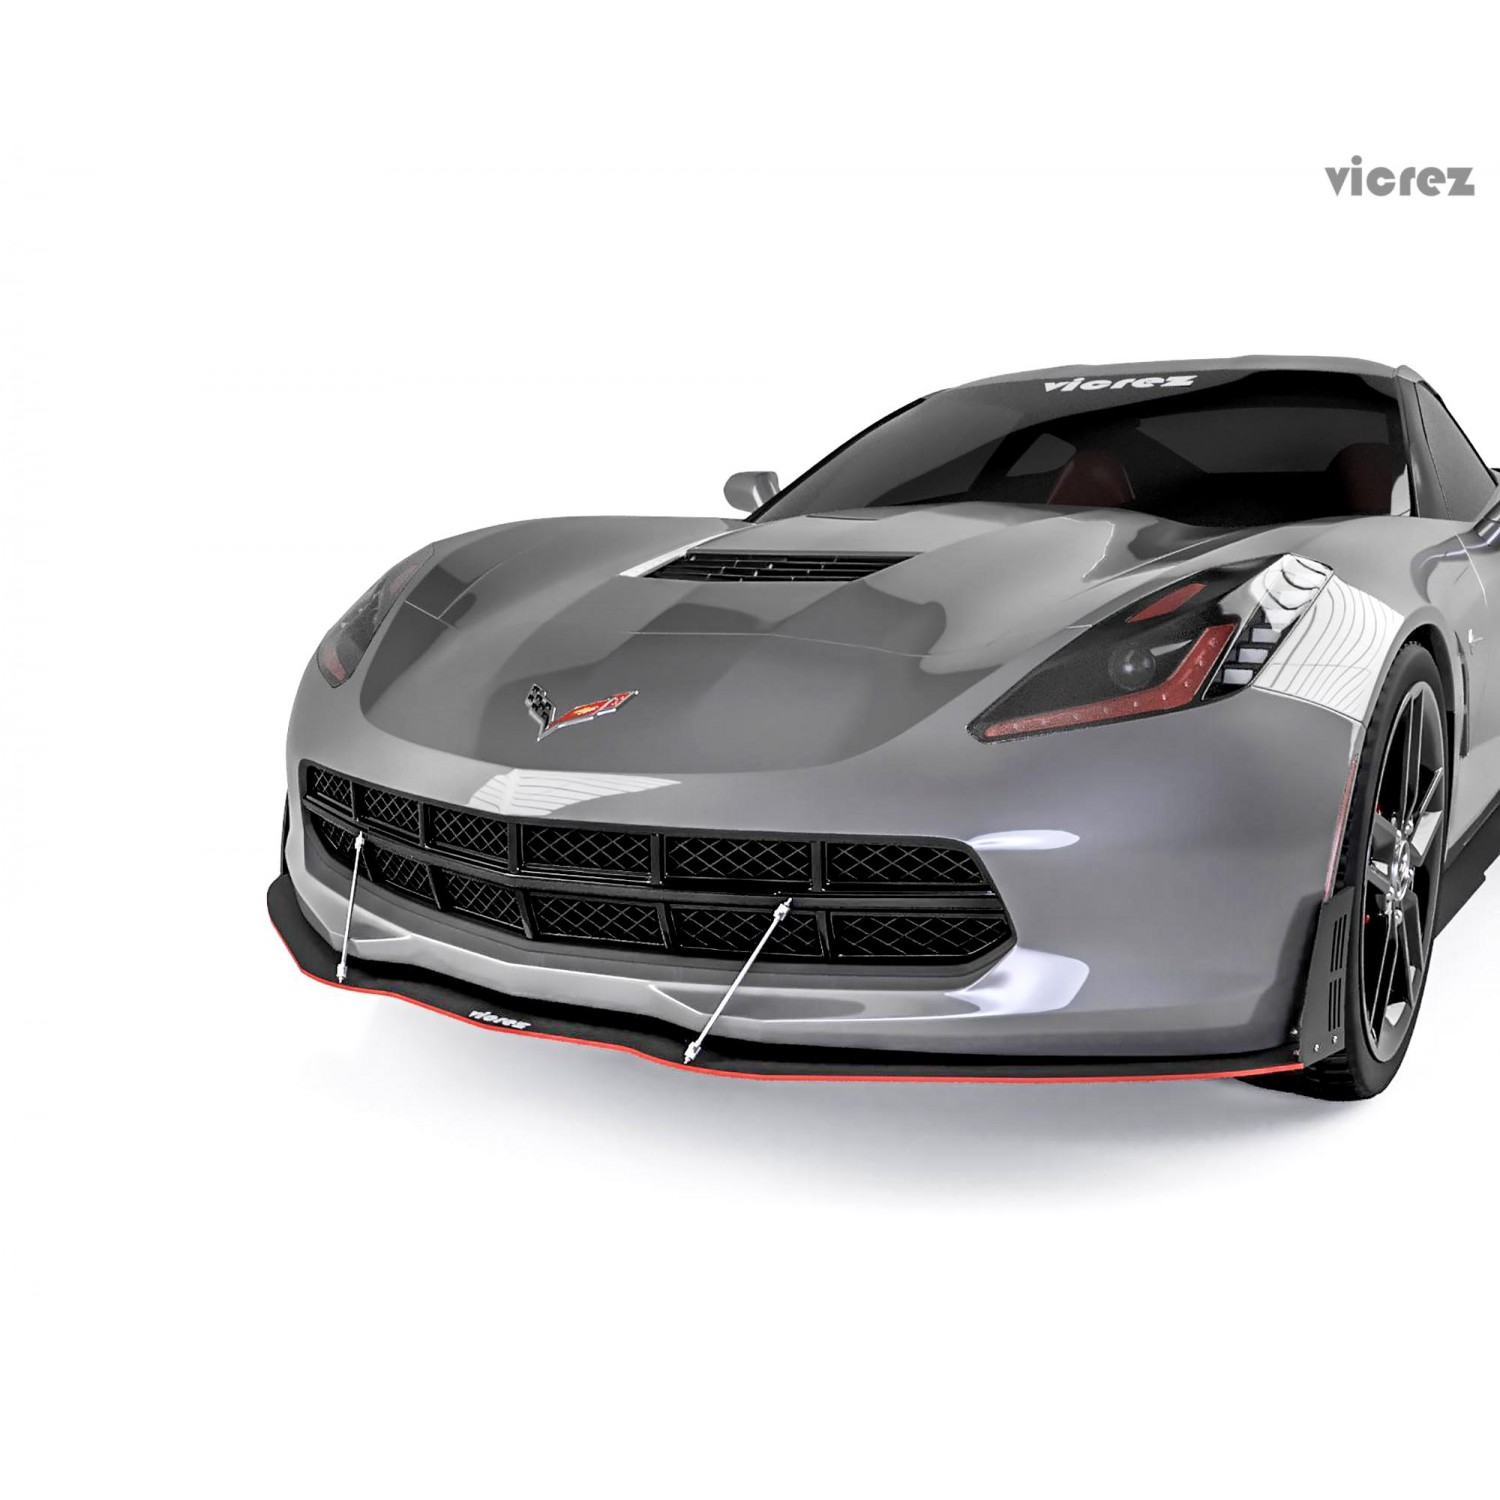 Chevy Corvette 2015 2018 High Mount: Vicrez Chevrolet Corvette C7 2014-2018 VZ Style Front